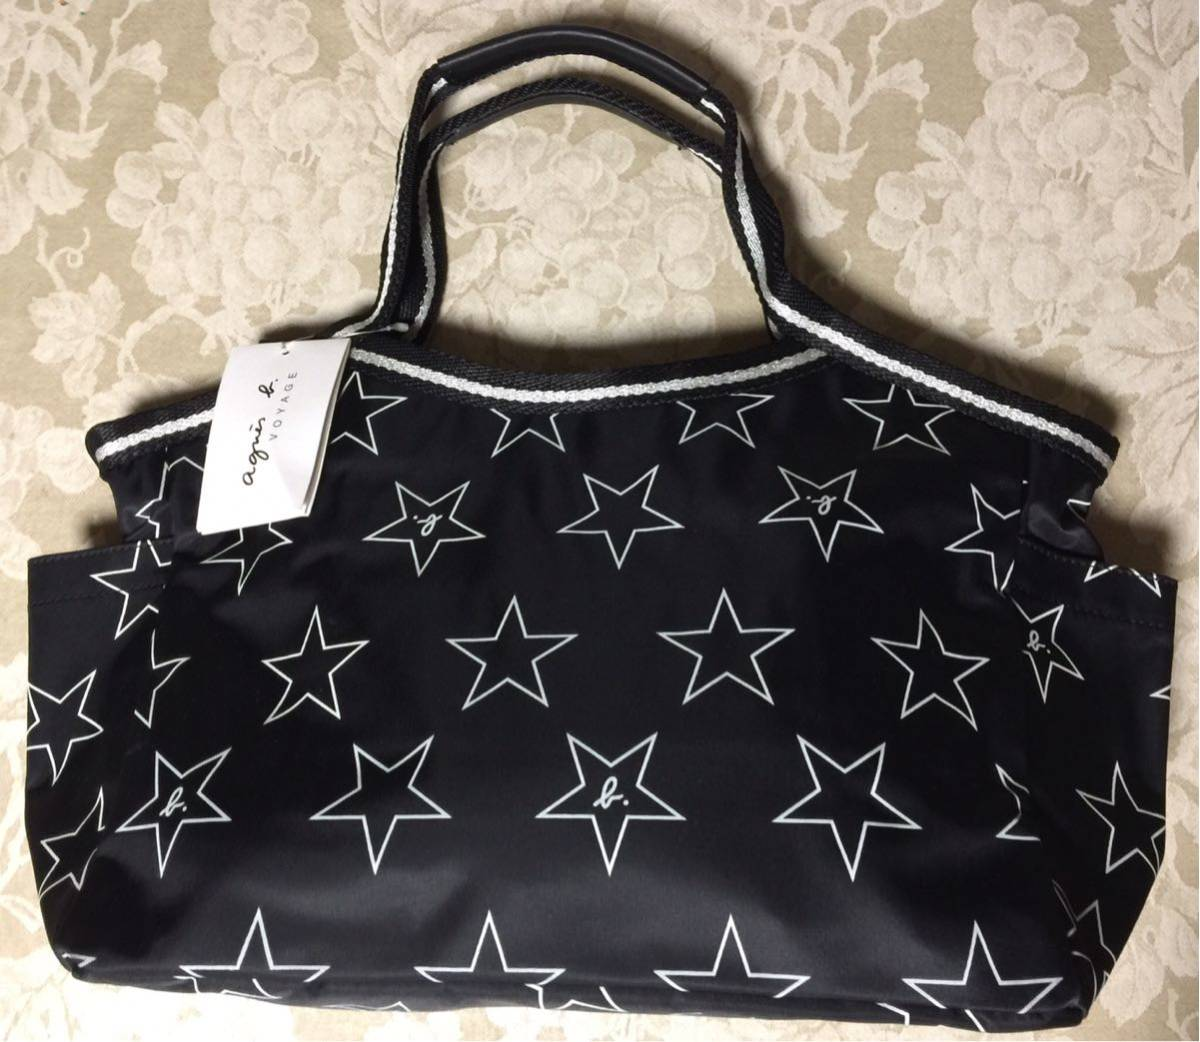 Agnes b tote bag (star)